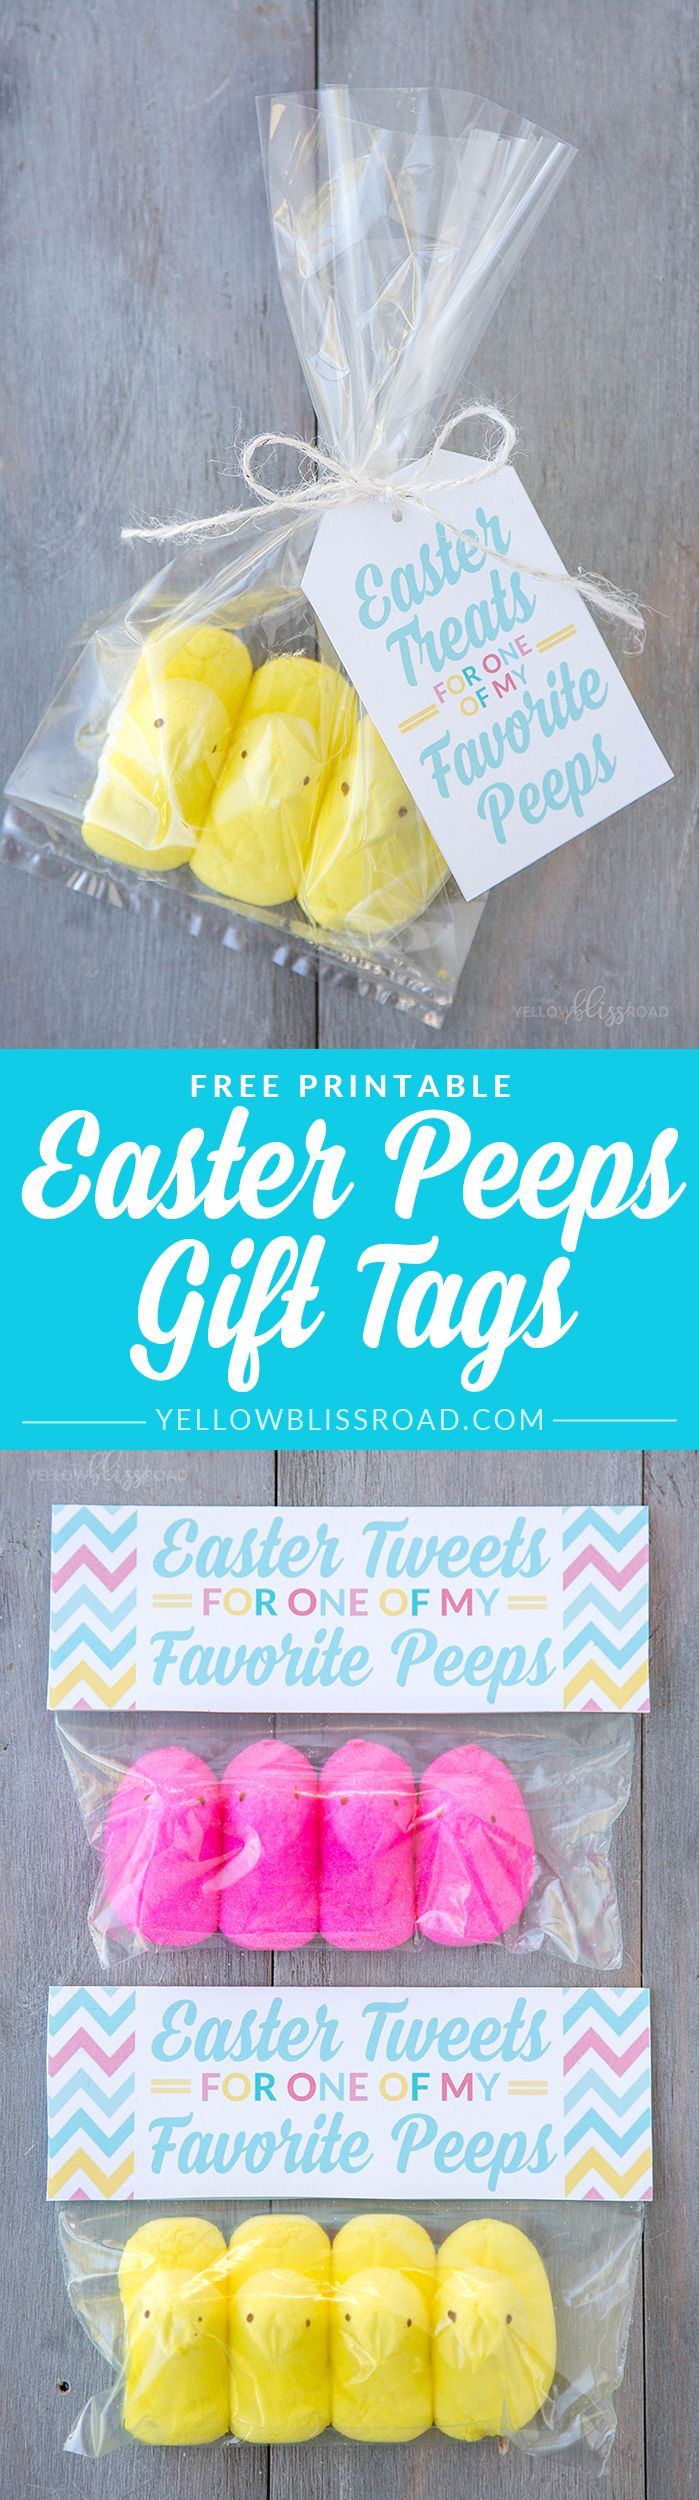 25 unique easter gift ideas on pinterest egg boxes easter free printable peeps easter gift tags use these free printable gift tags to make sweet negle Images